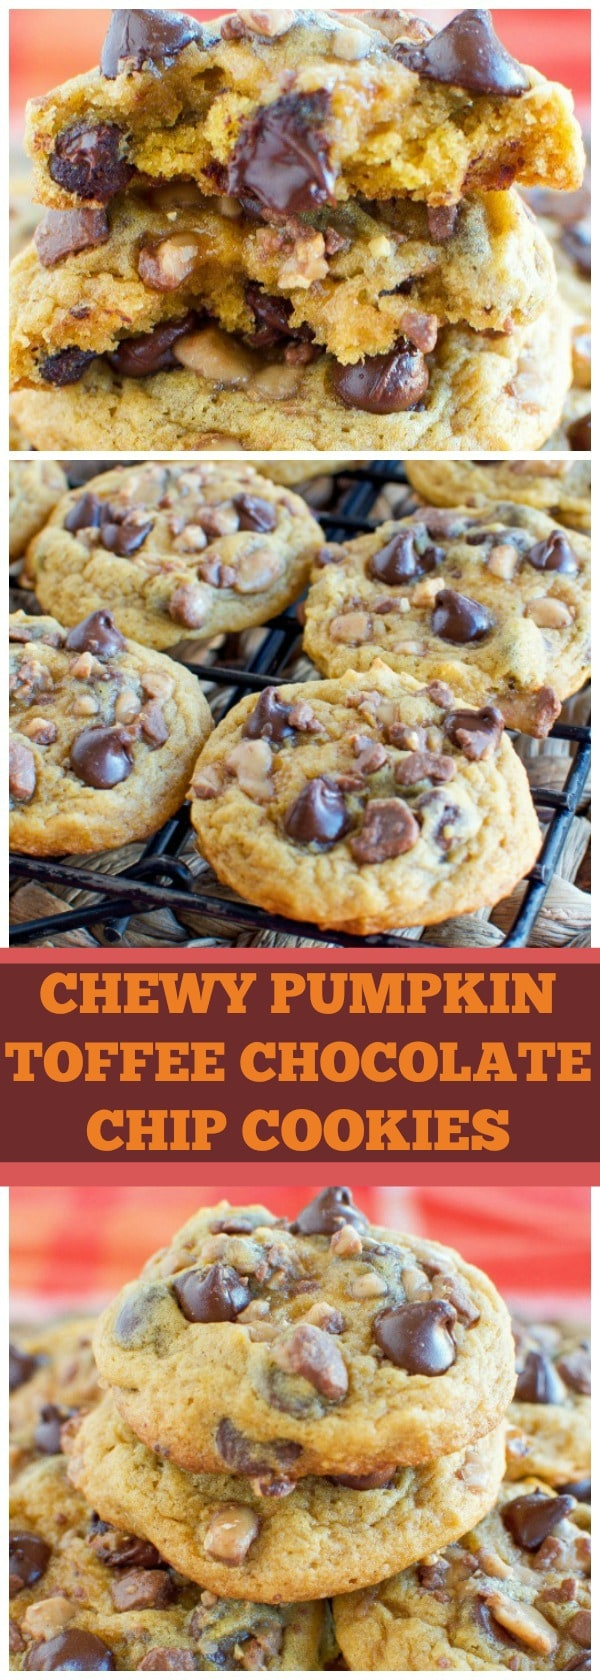 CHEWY PUMPKIN TOFFEE CHOCOLATE CHIP COOKIES !! Even better than they sound!!